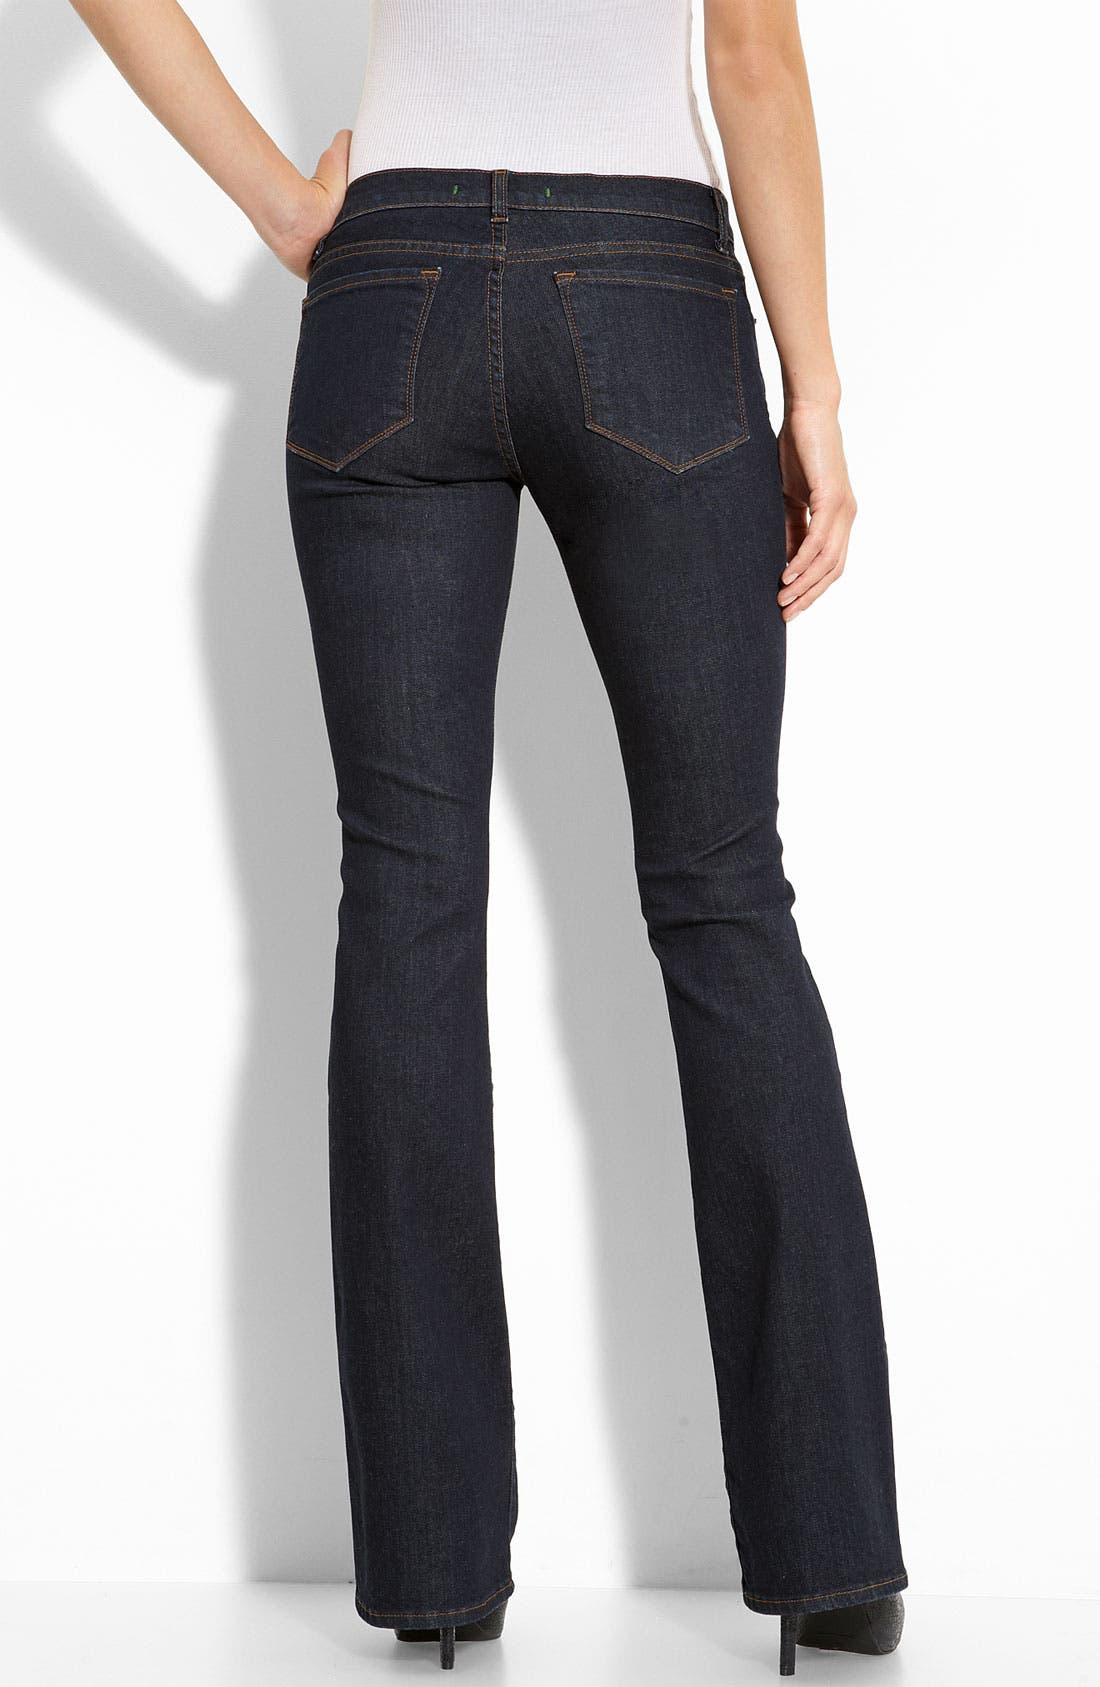 J BRAND 'Bailey' Bootcut Stretch Jeans, Main, color, 401